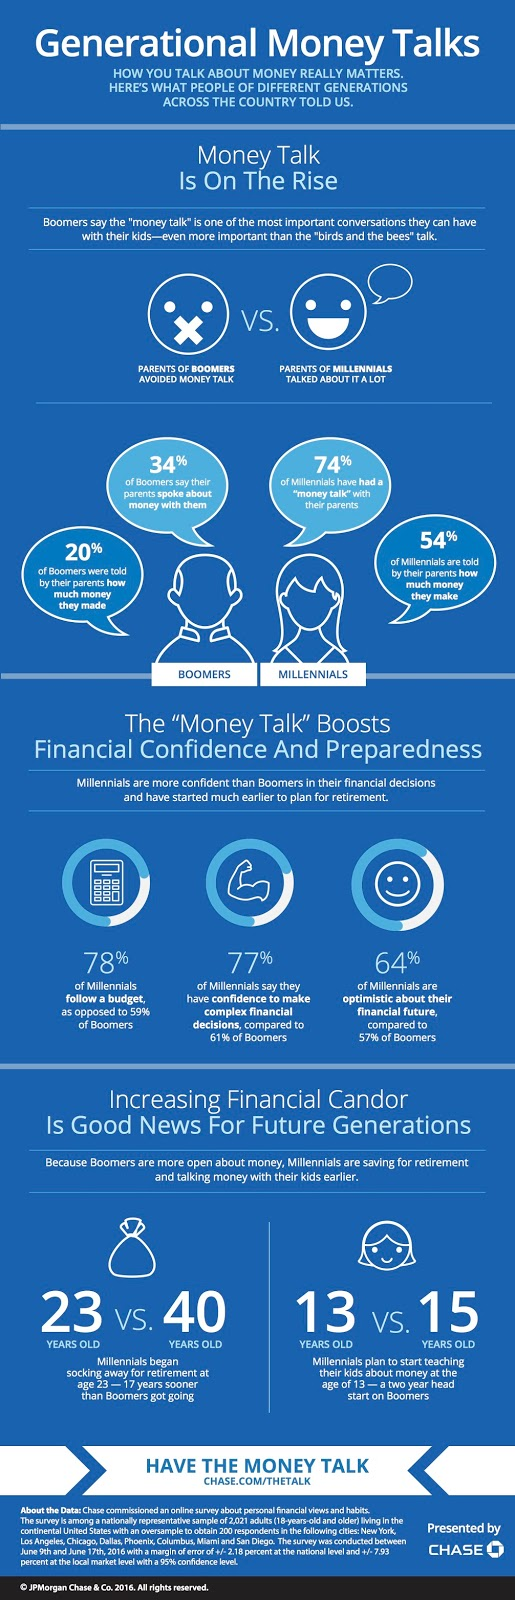 Chase-MoneyTalks_Infographic